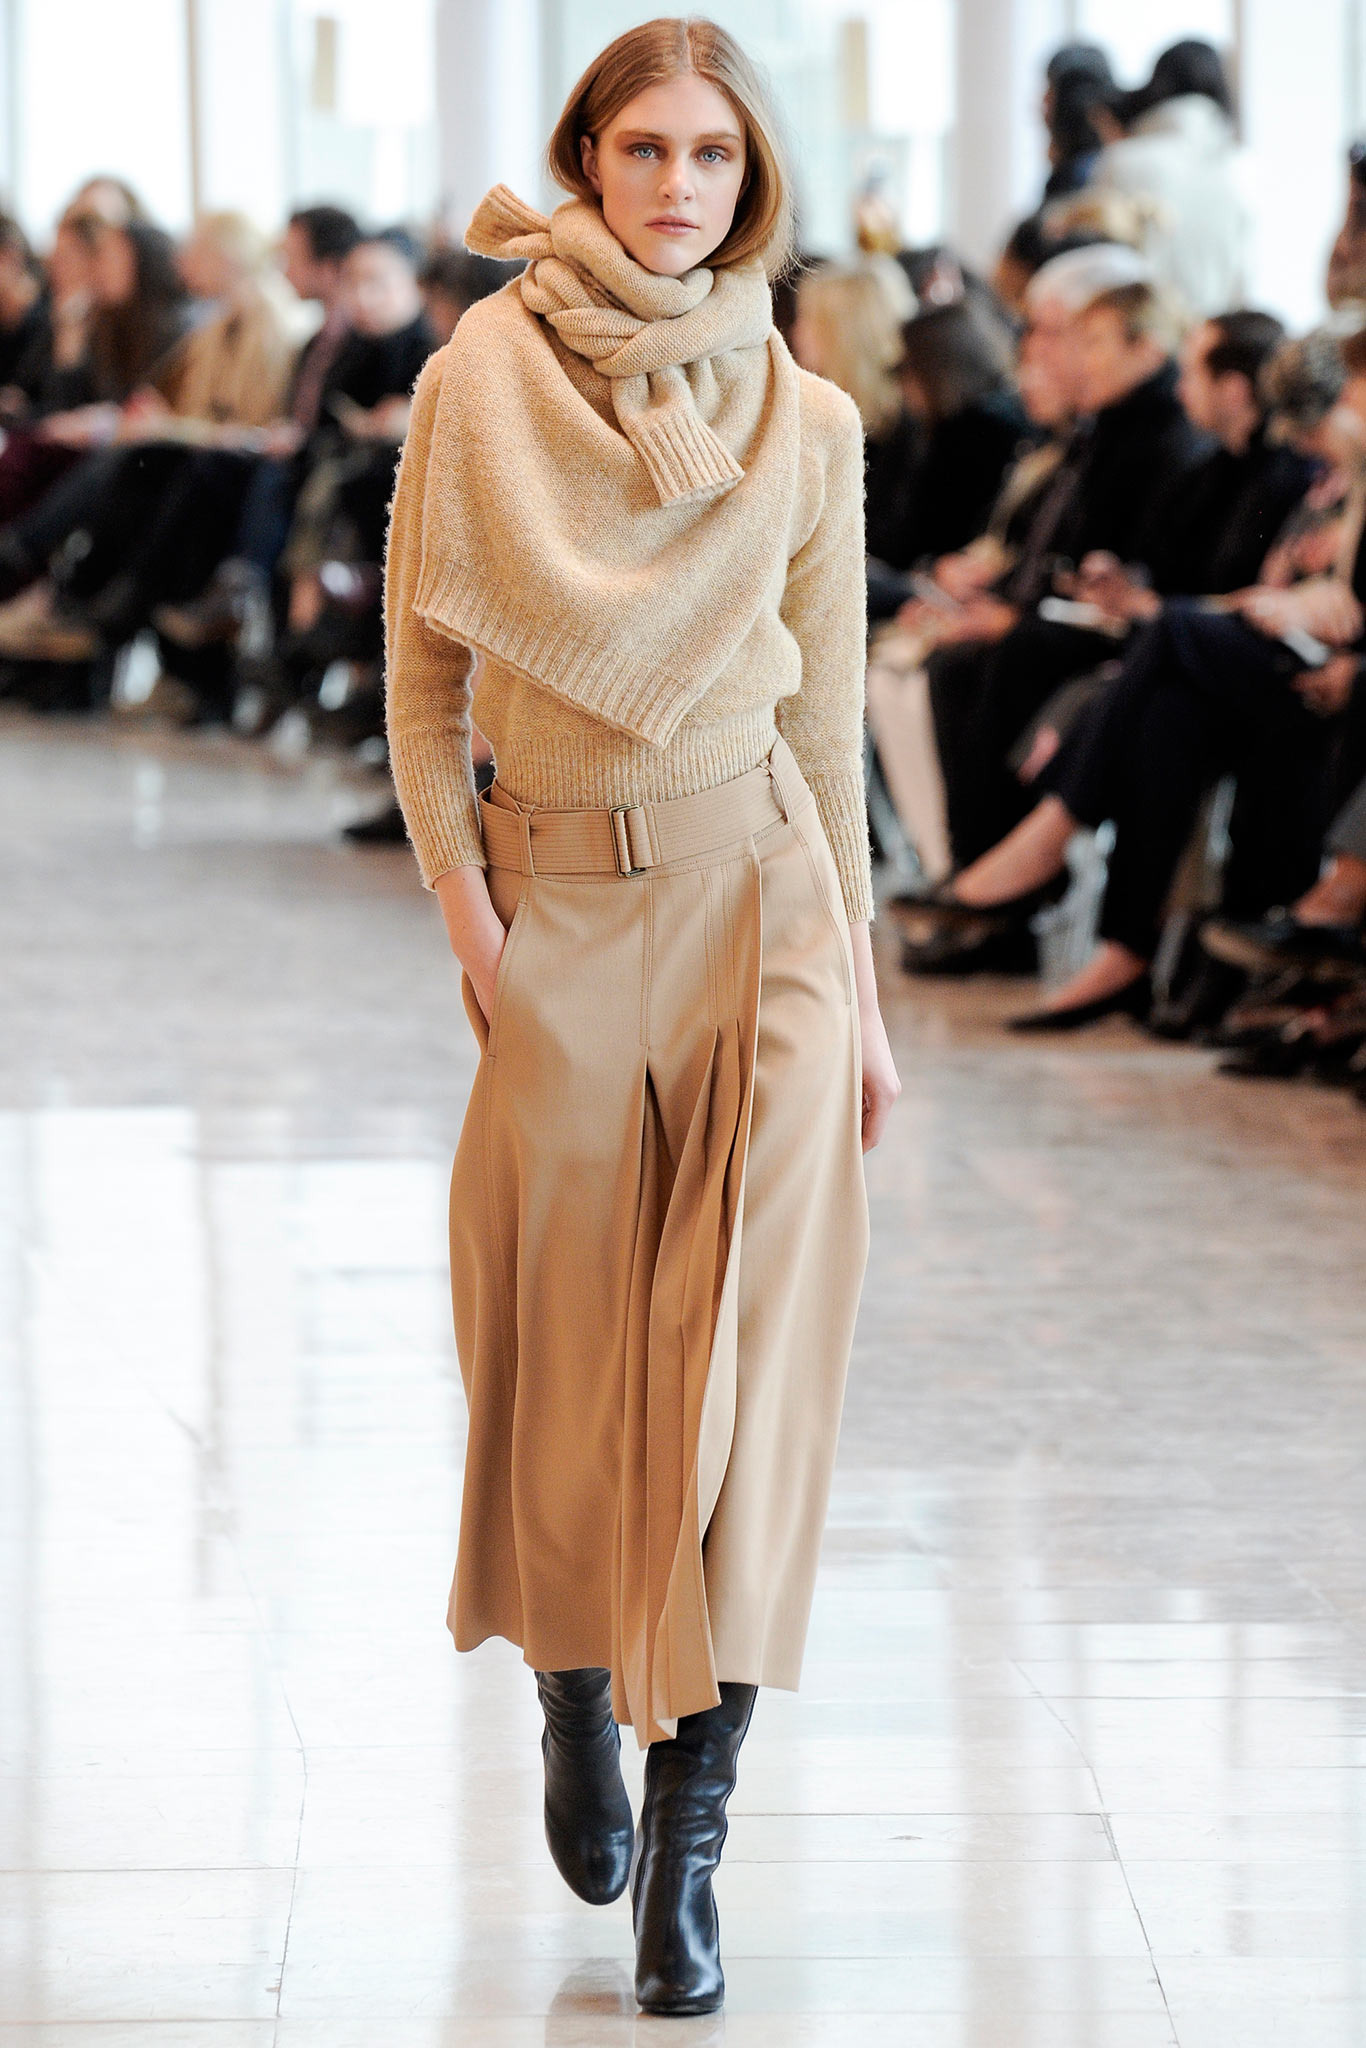 Thicker, textured knits evoke informality (Lemaire FW 2014)